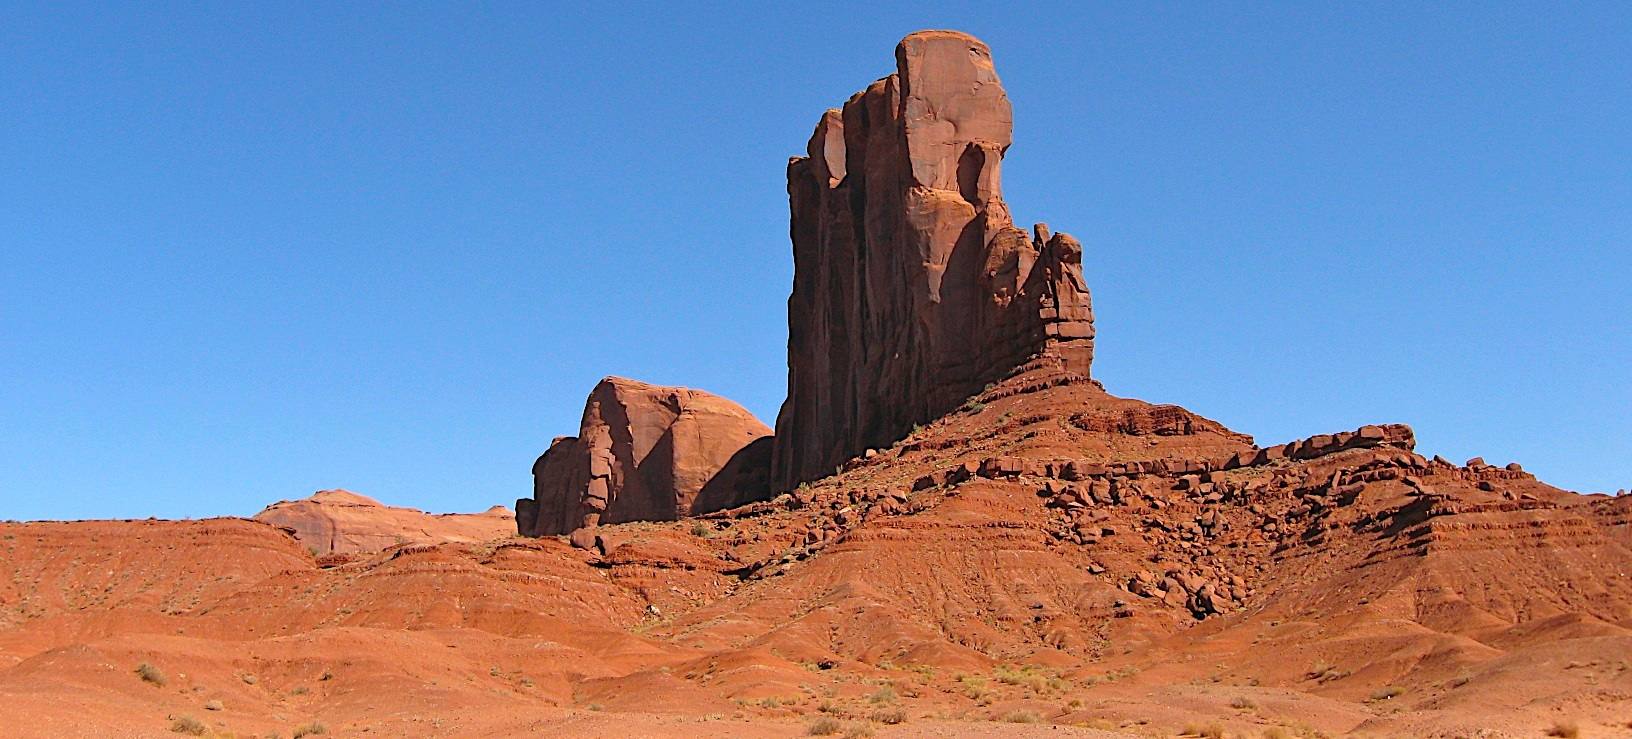 The Monument Valley in the Navajo Tribal Lands